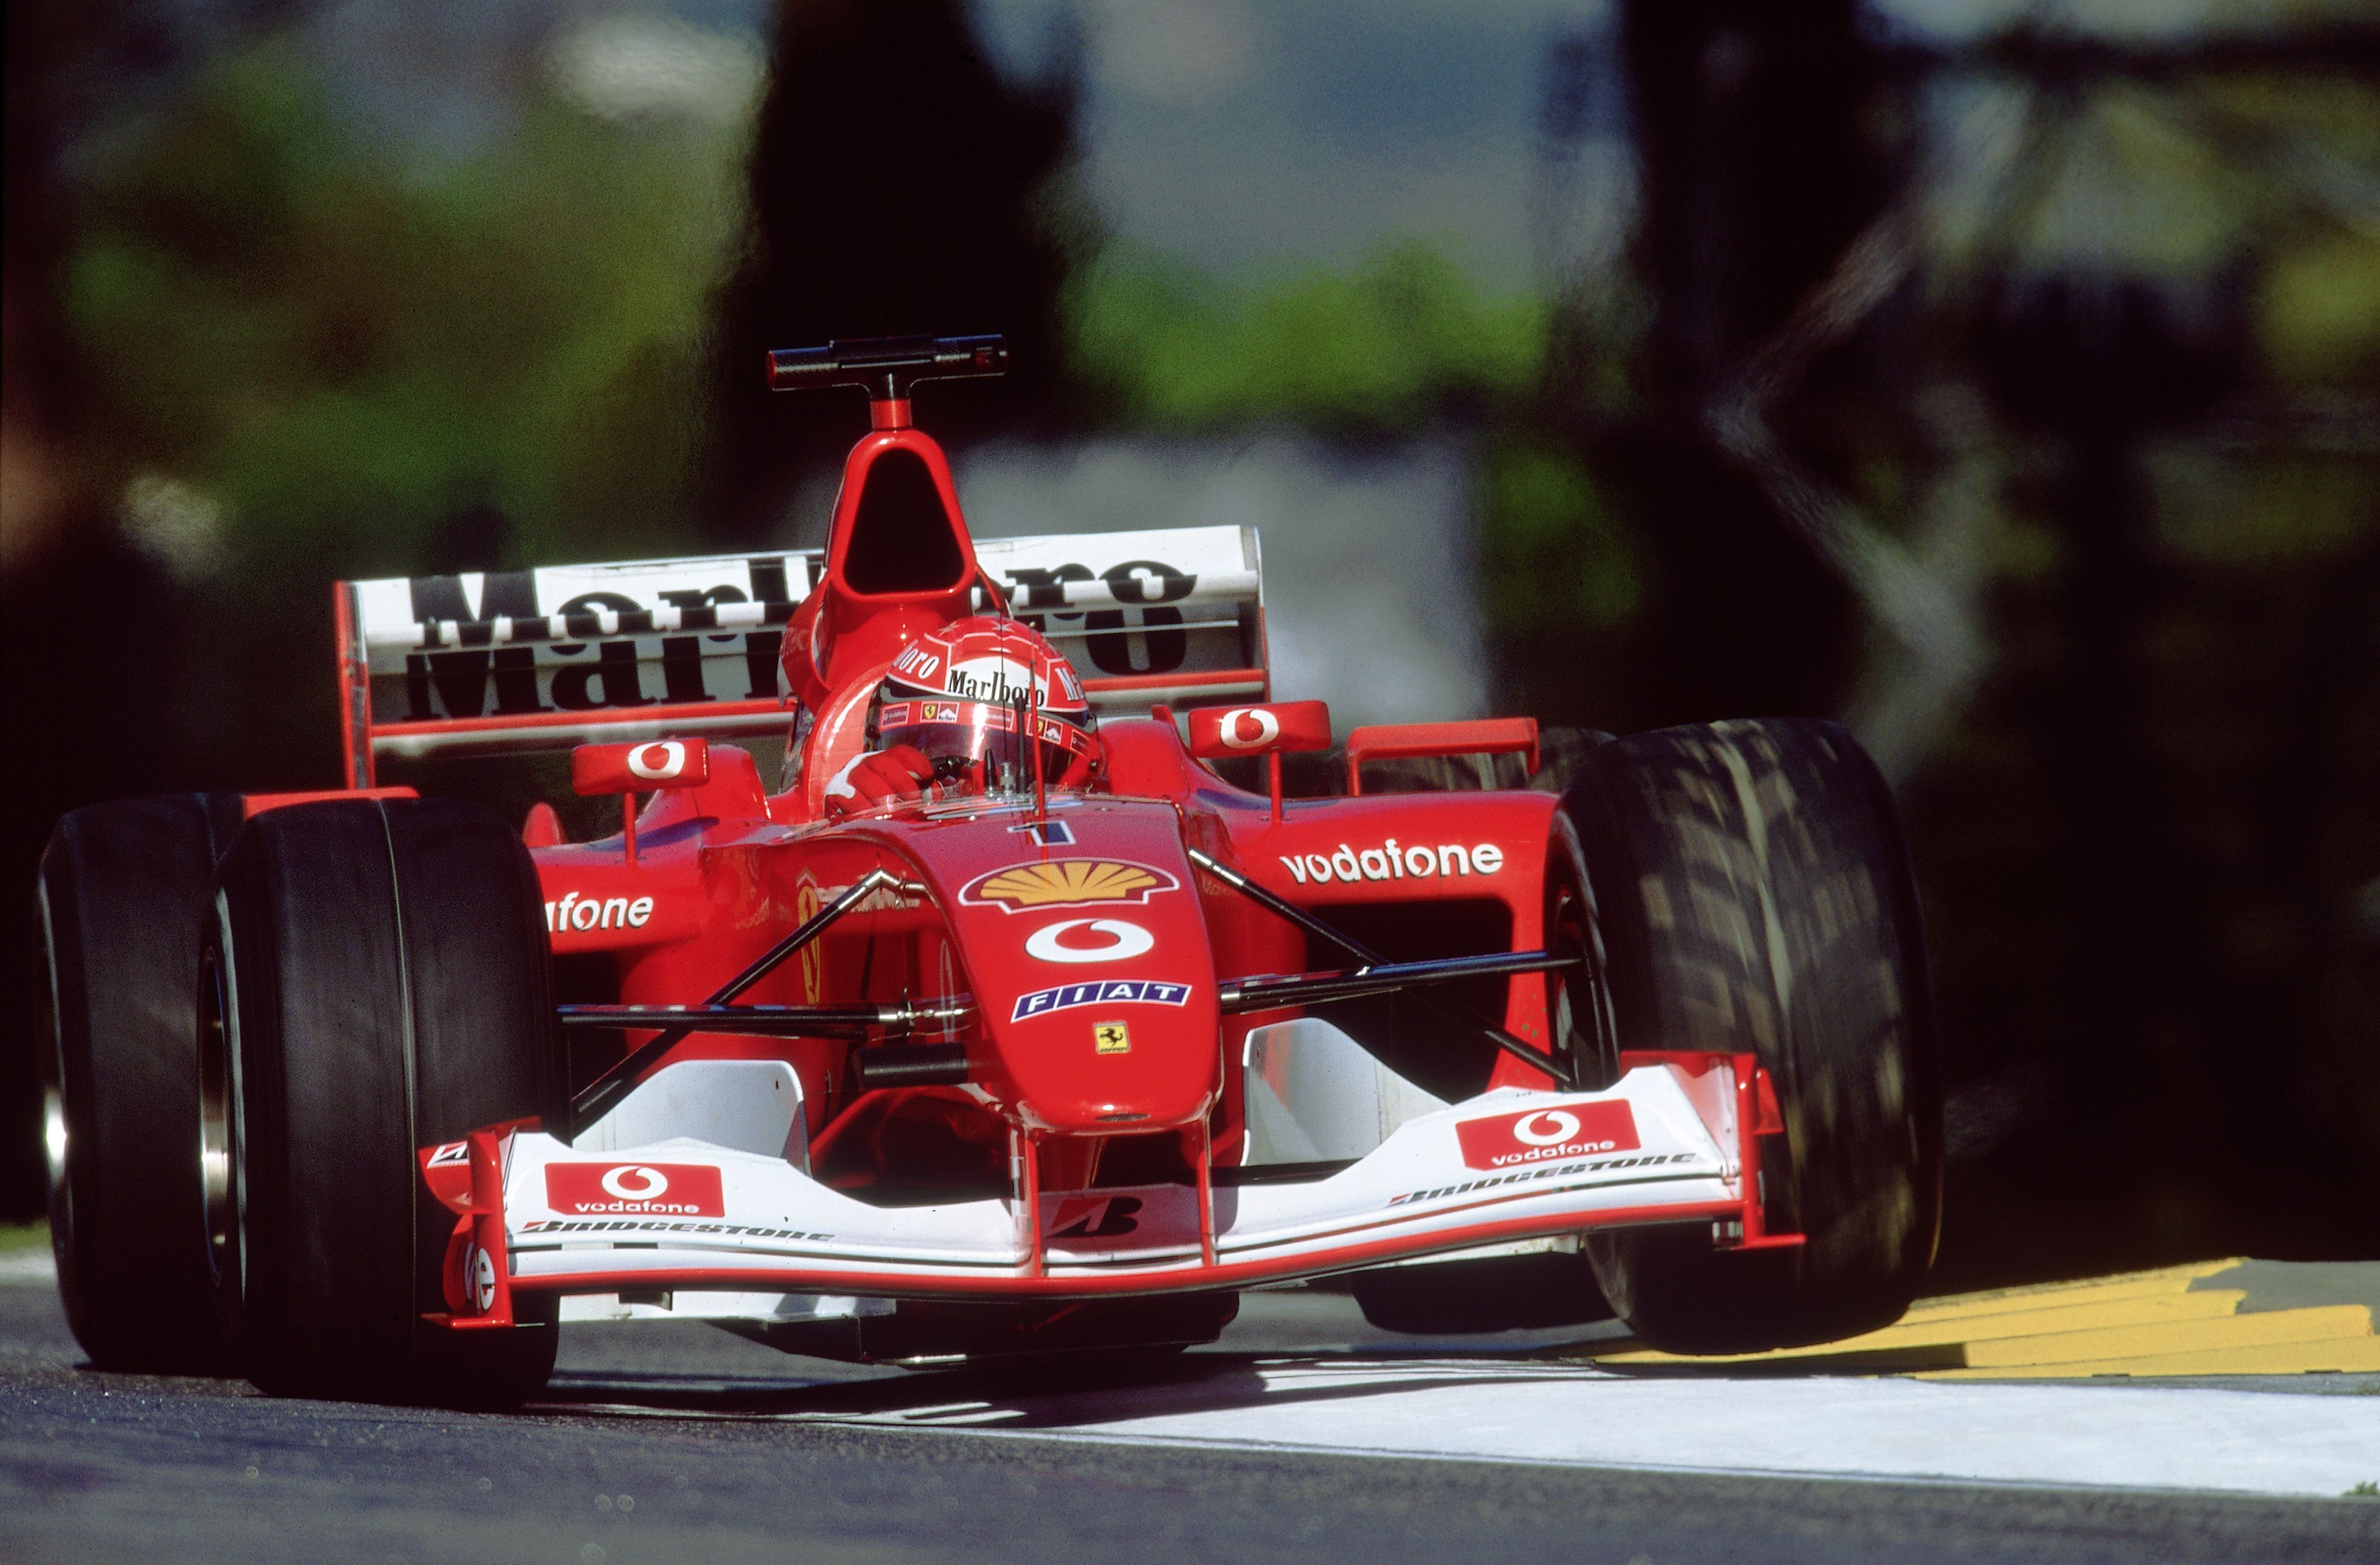 Michael Schumacher's 2002 F1 Championship-Winning Car is Coming Up for Sale